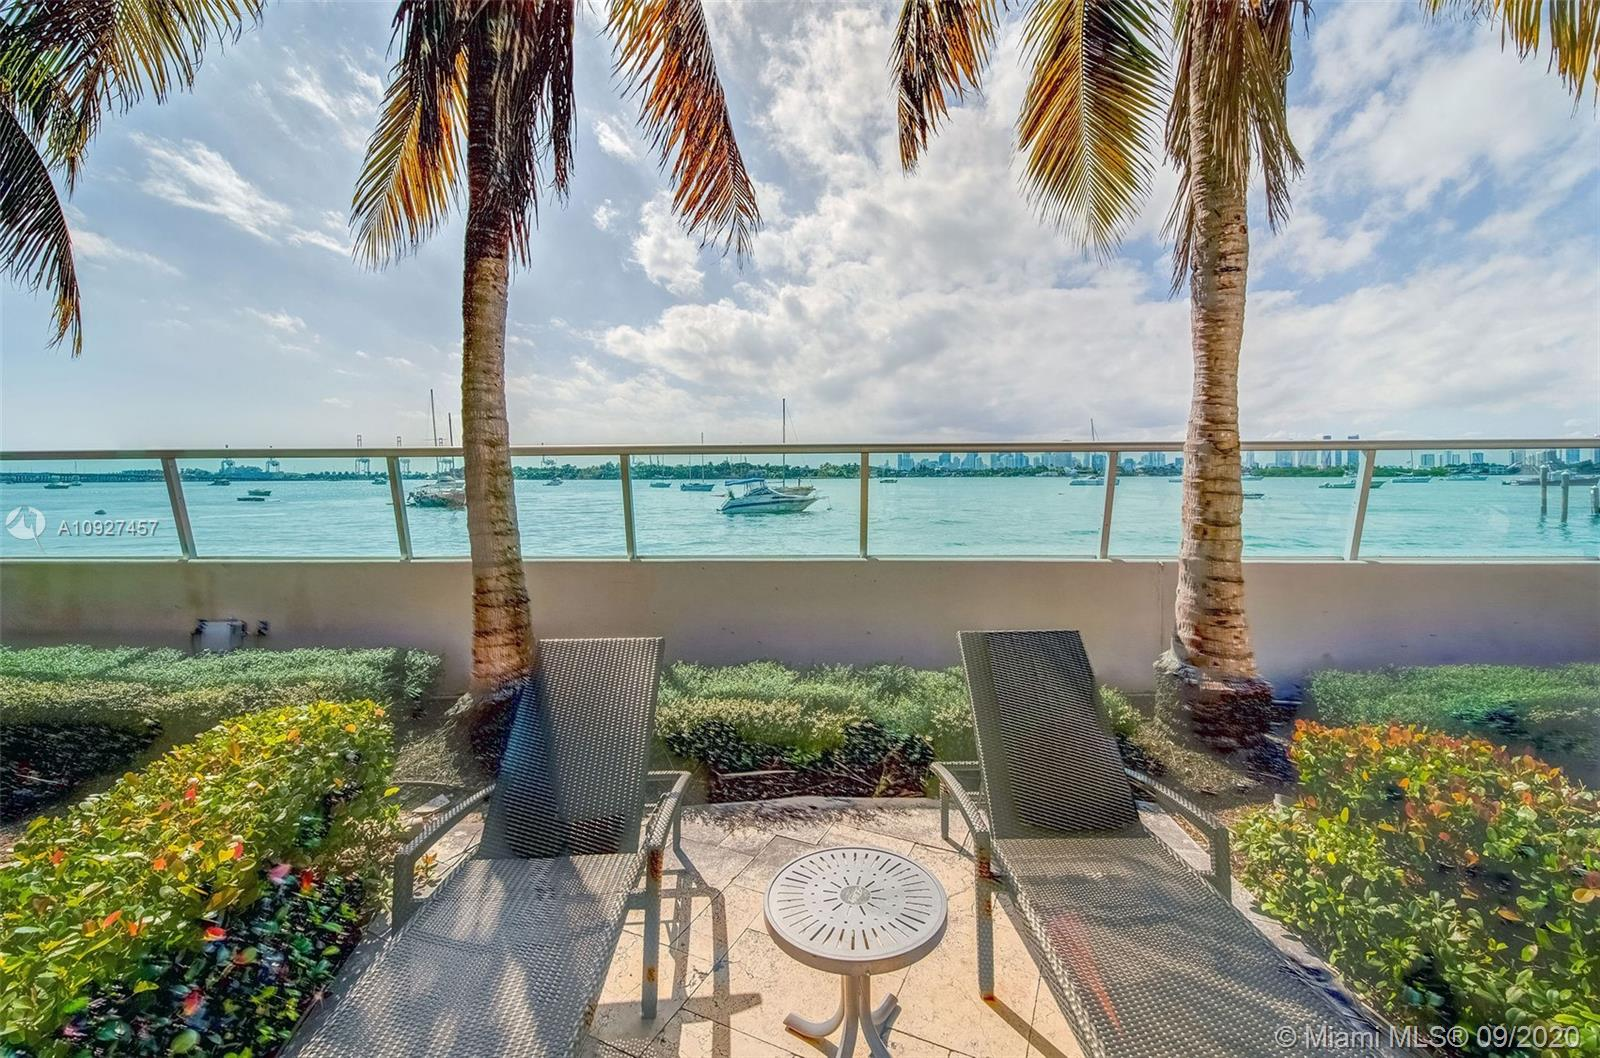 Flamingo South Beach #M-812 - 1500 Bay Rd #M-812, Miami Beach, FL 33139